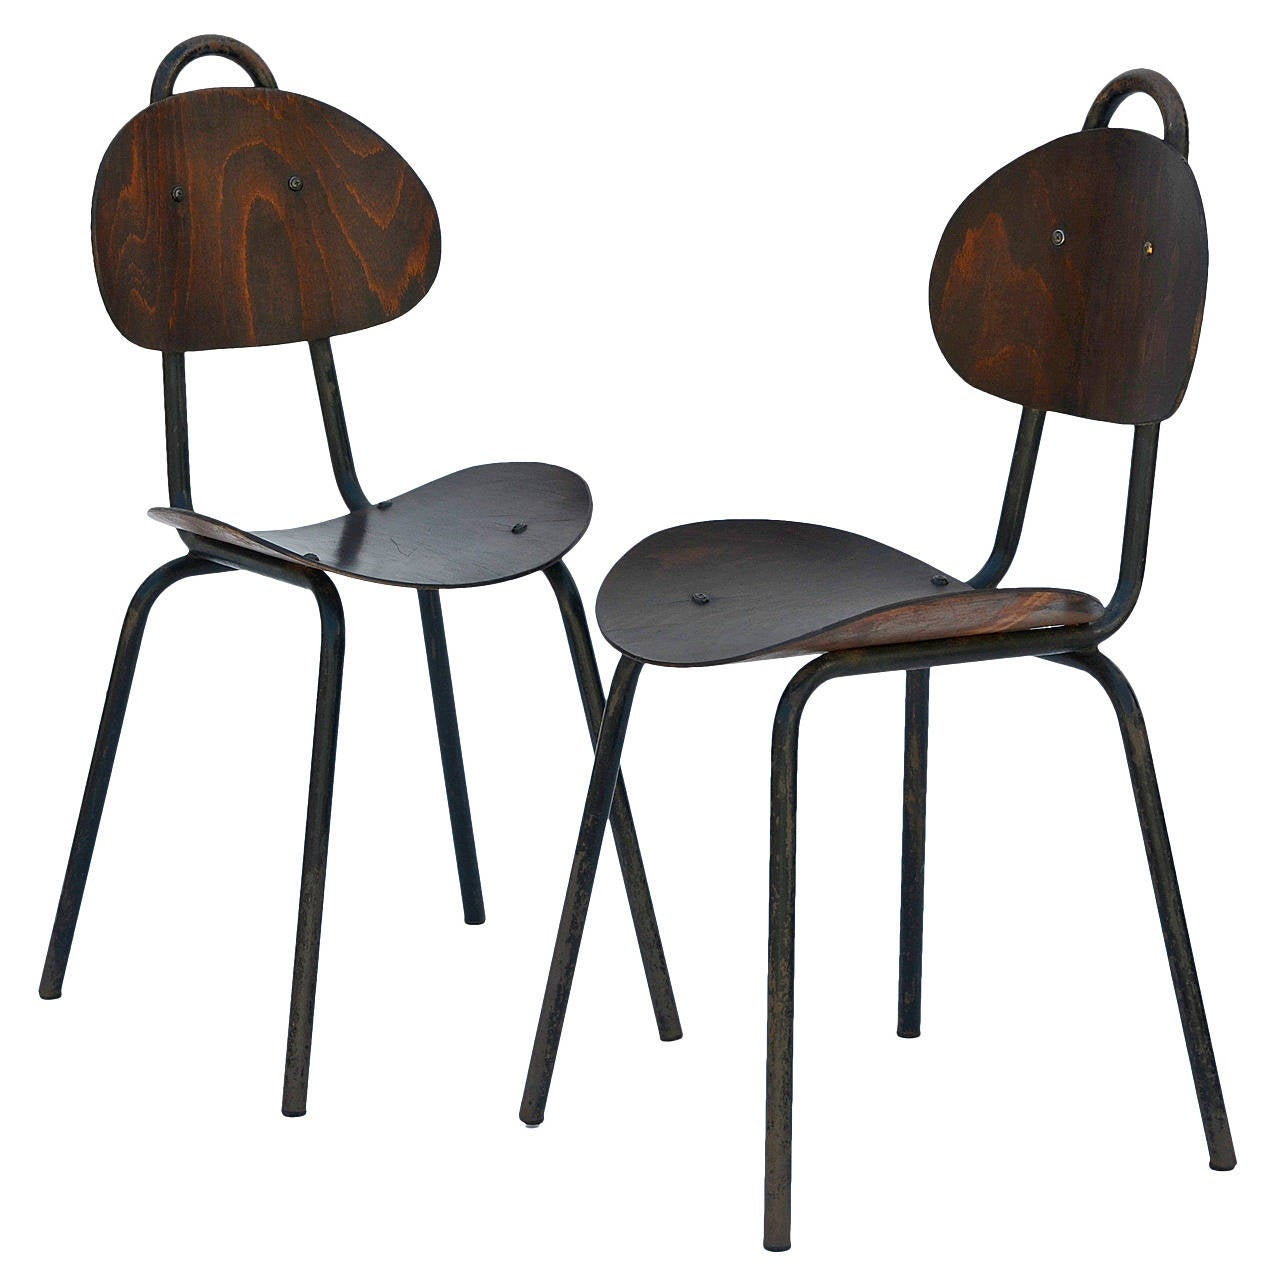 Pair of Unique French Industrial Bentwood Side Chairs